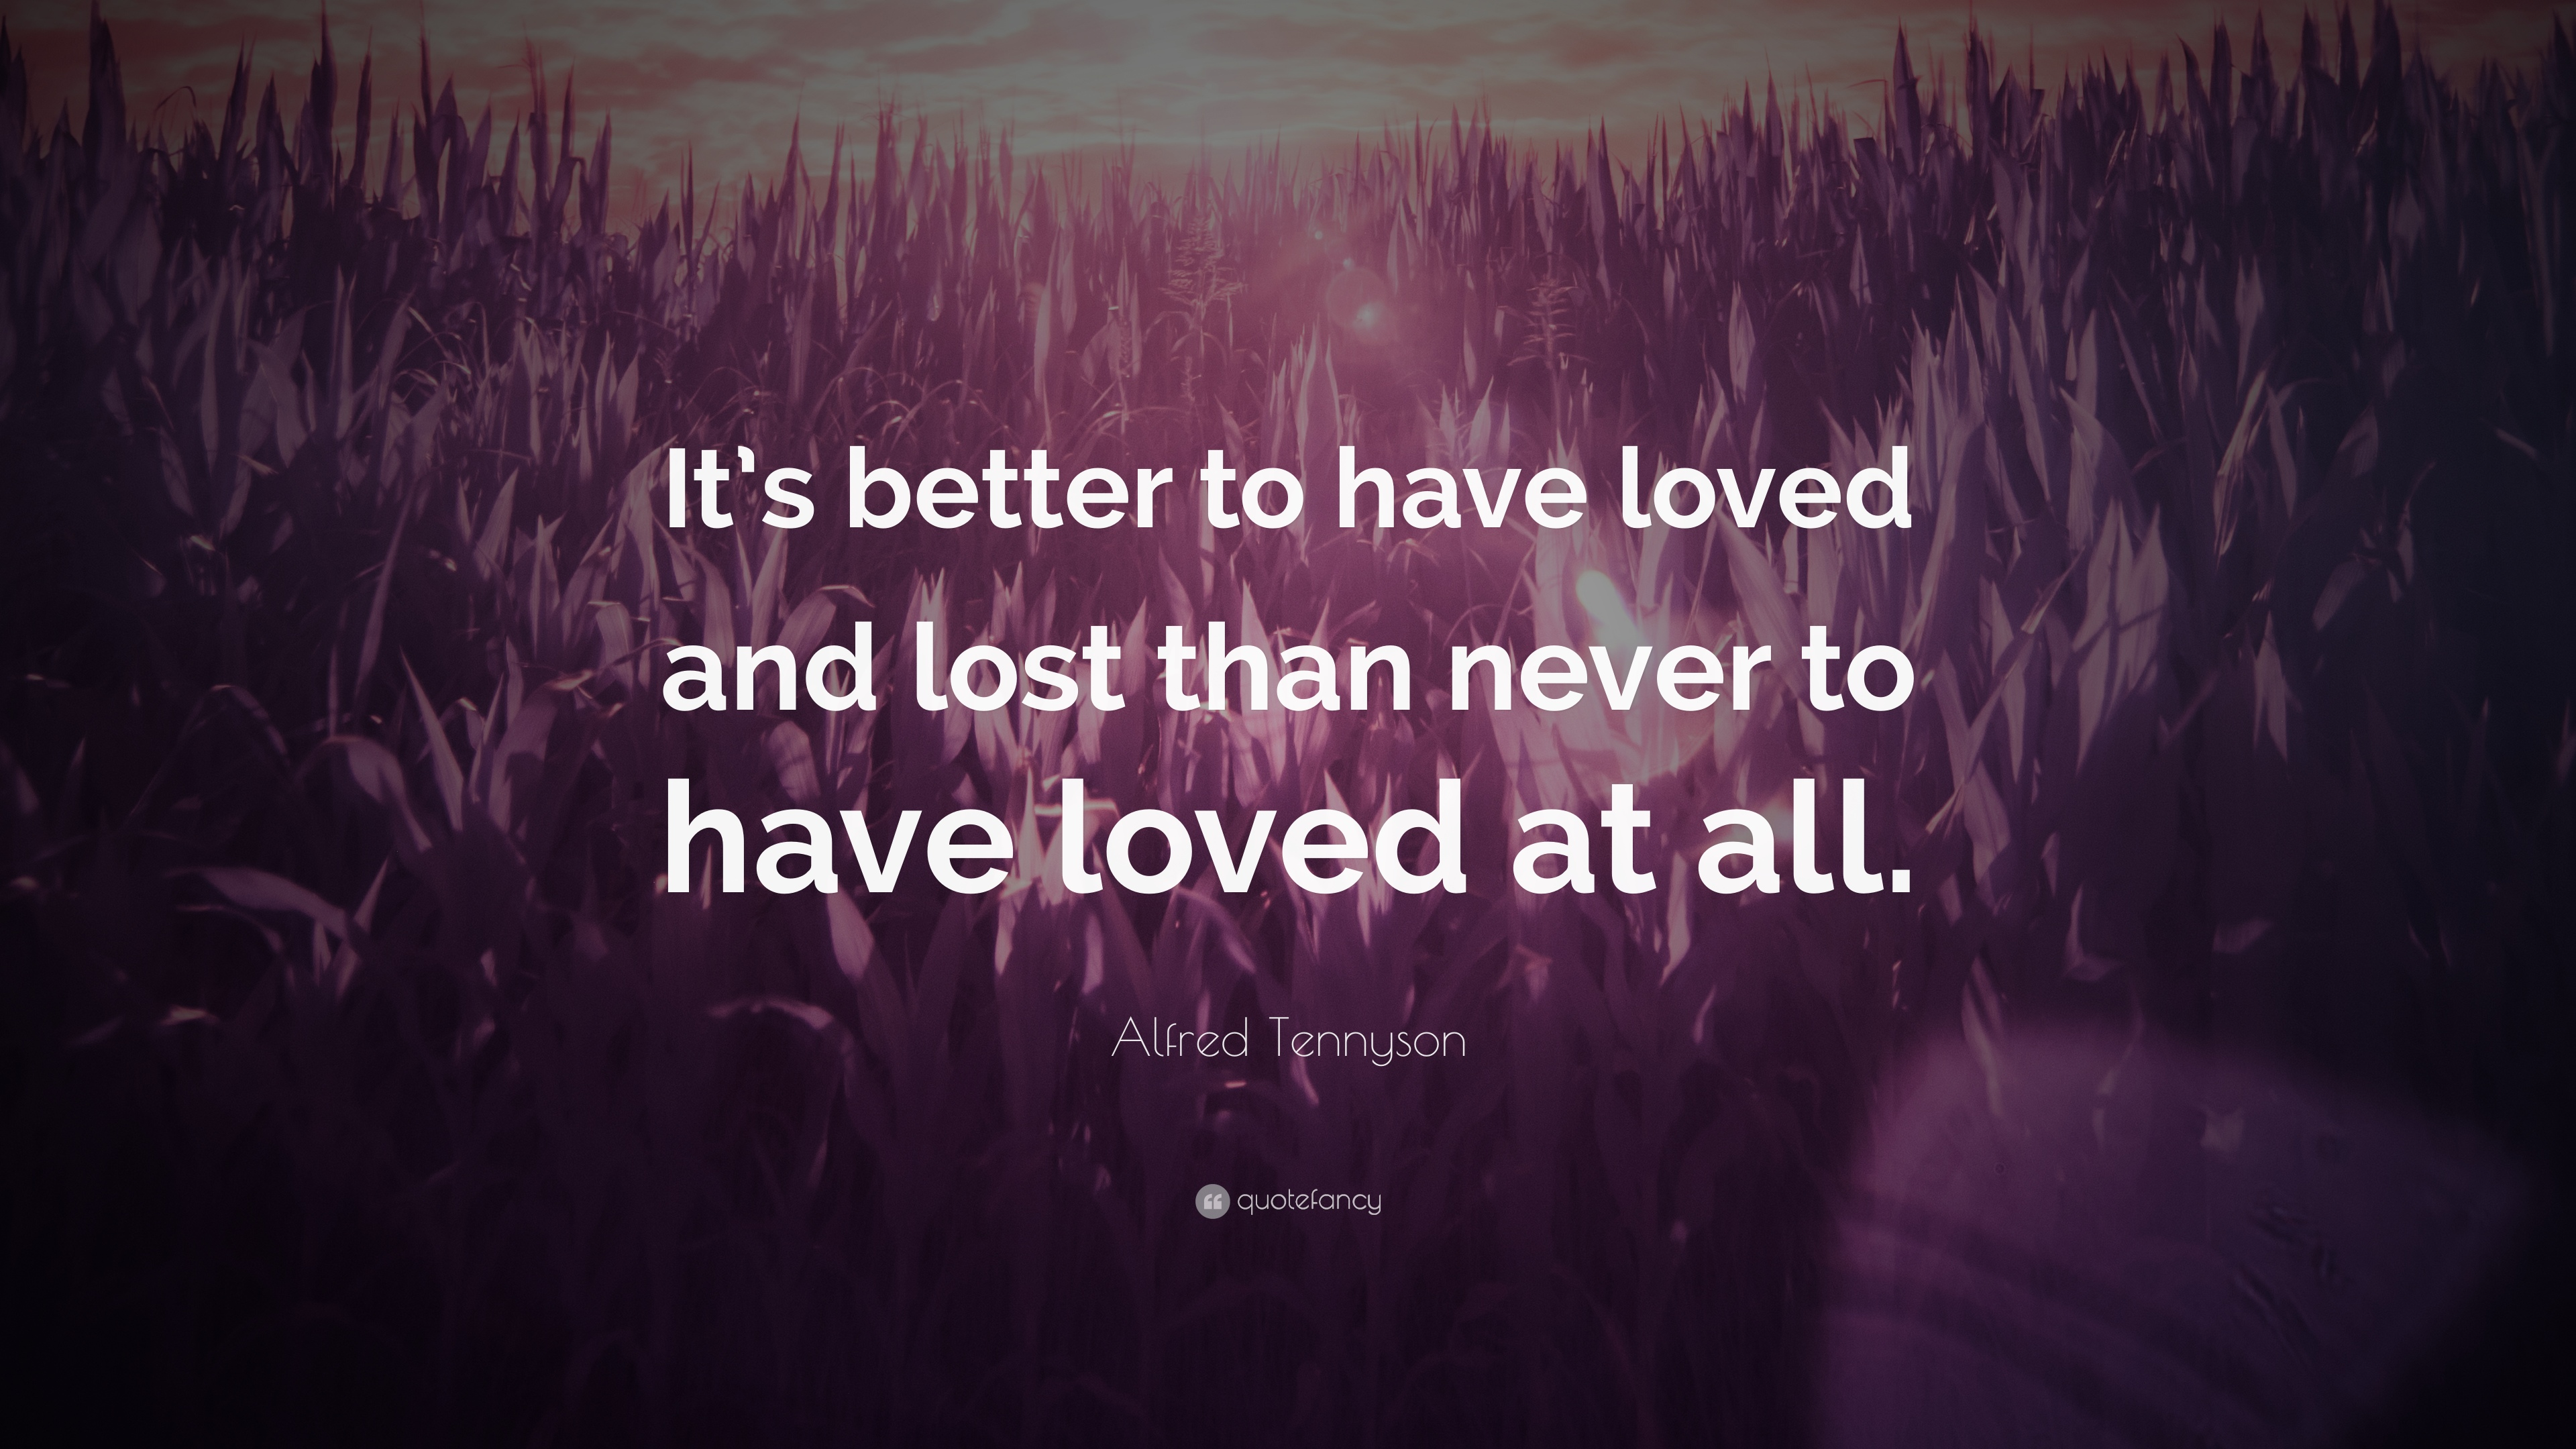 Famous Quotes About Death Of A Loved One Love Quotes 26 Wallpapers  Quotefancy